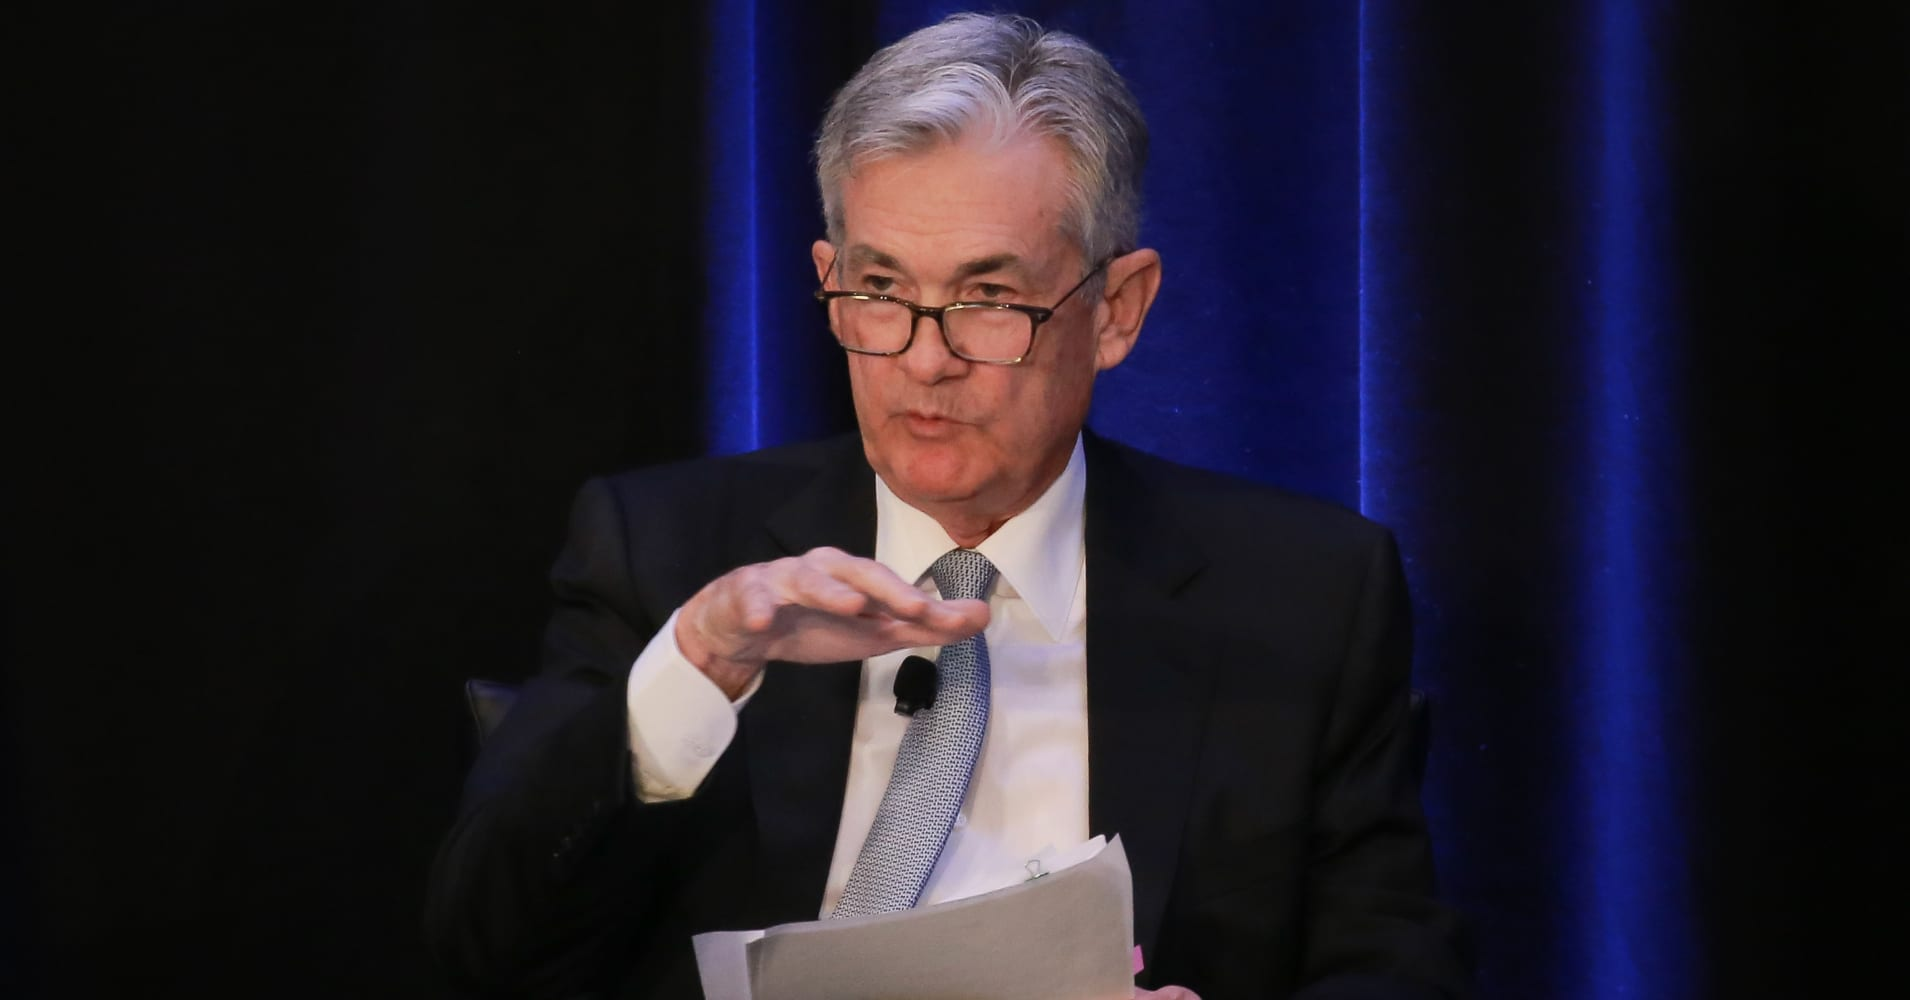 Fed chief Powell just walked back his autopilot remark and the financial markets love it